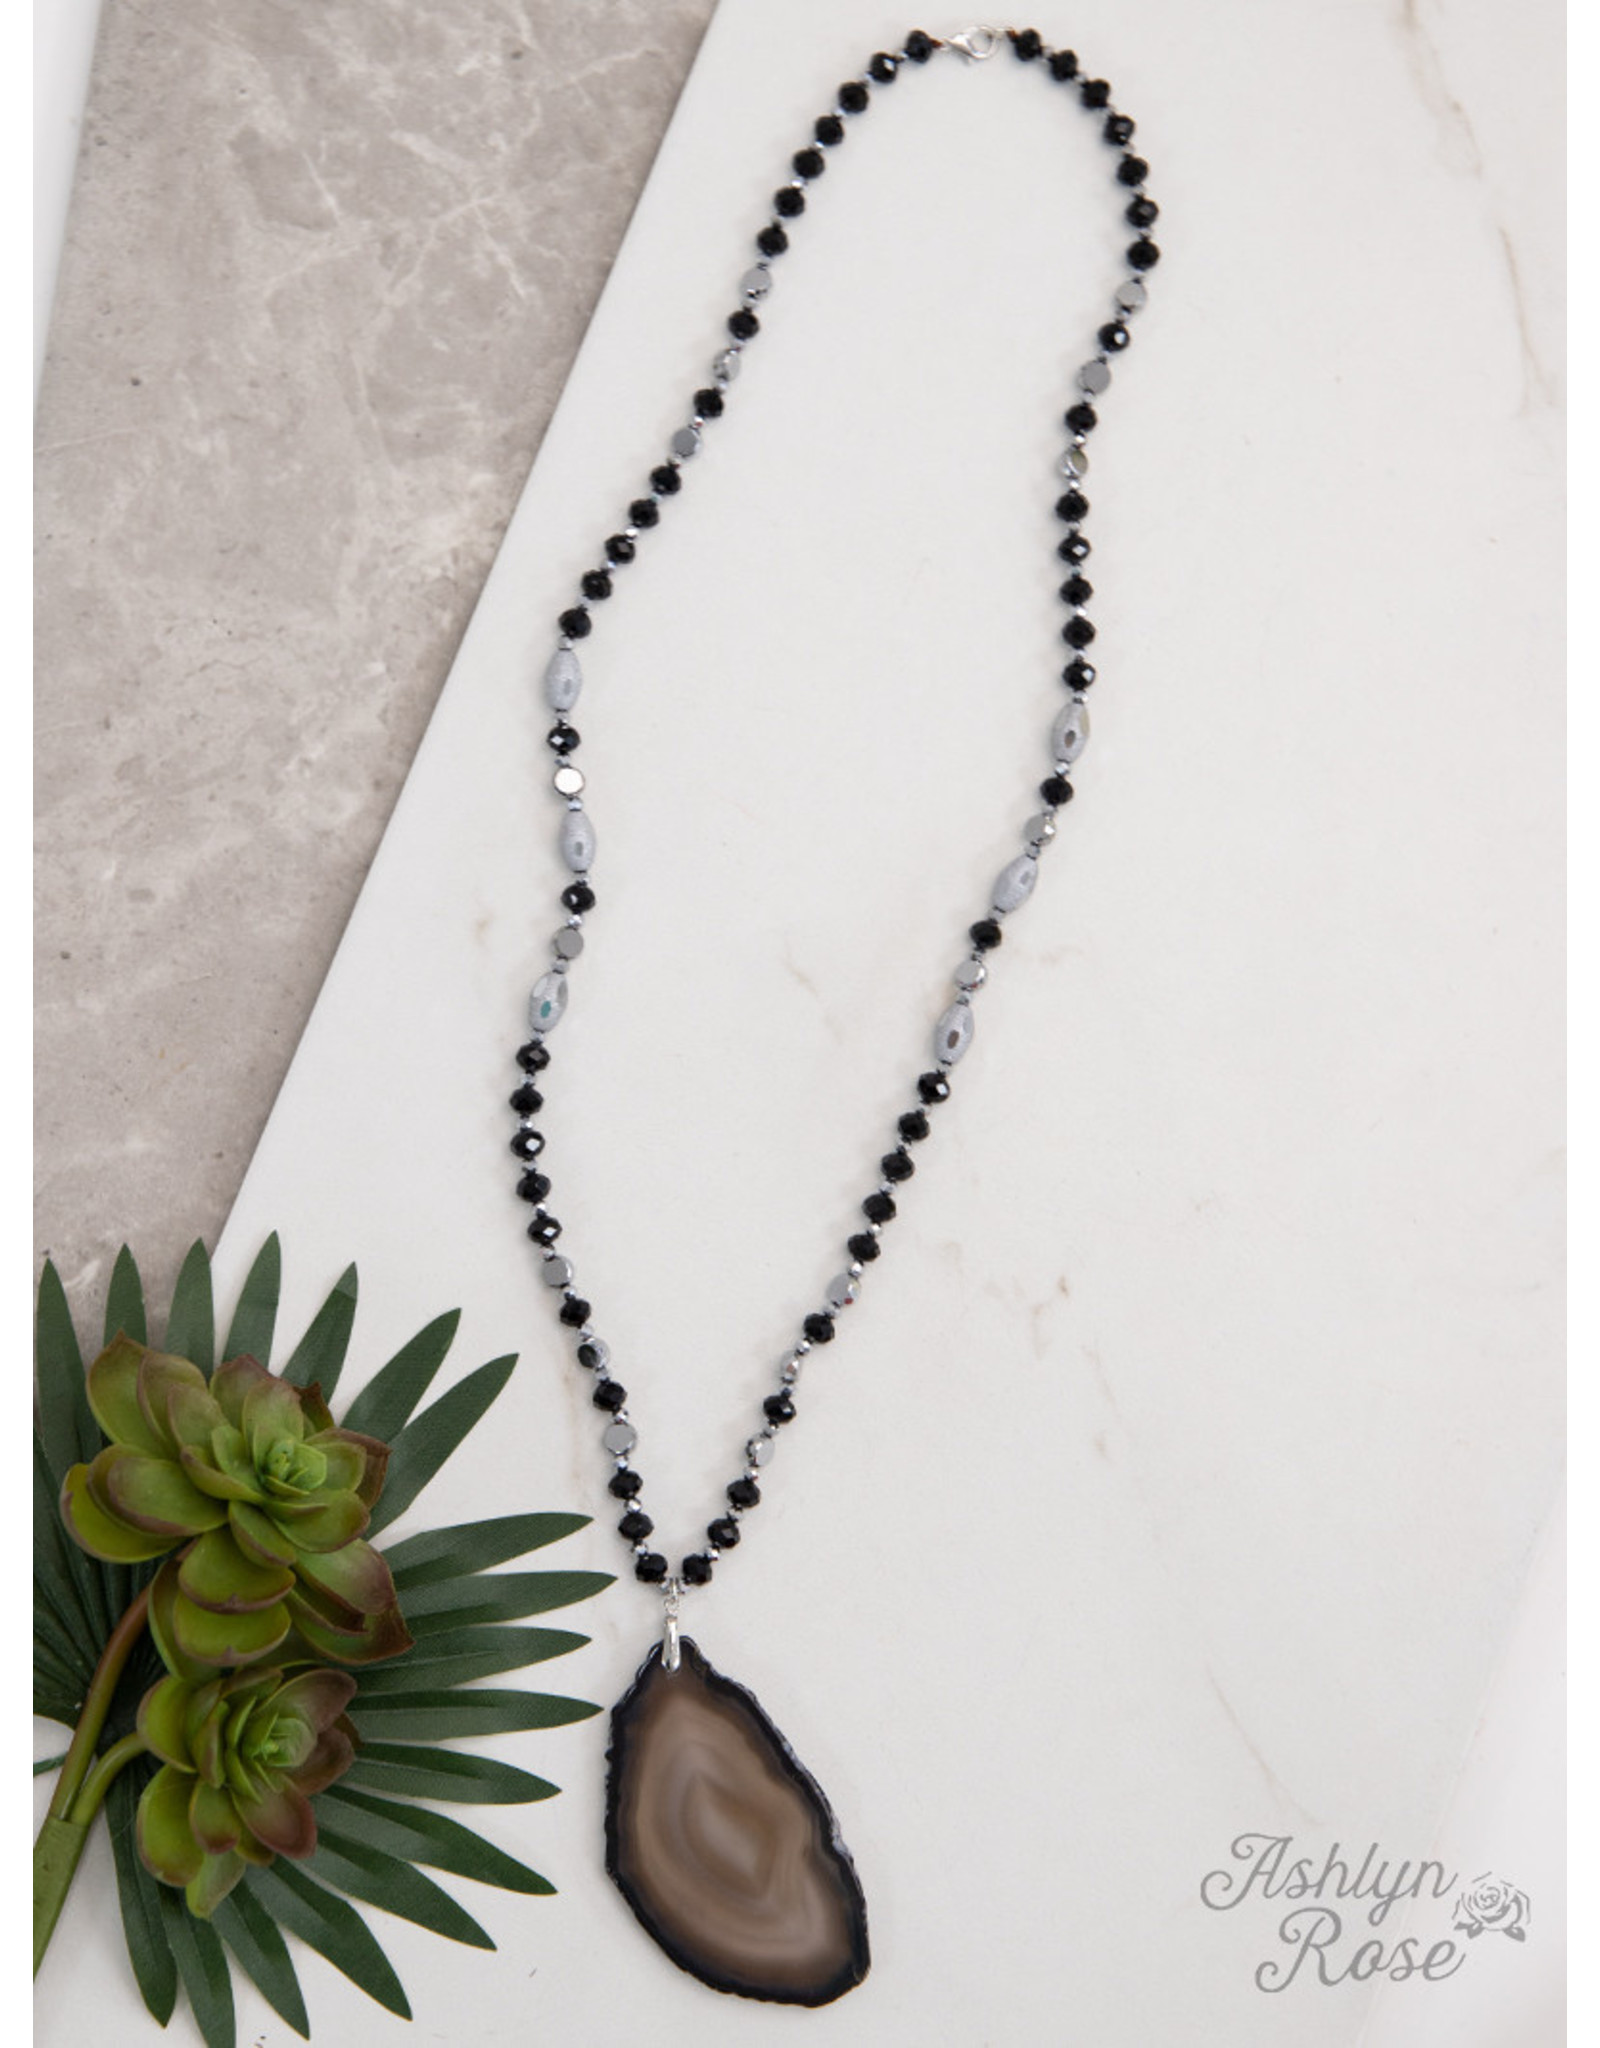 BLACK JOURNEY TO CENTER BEADED NECKLACE WITH STONE PENDANT